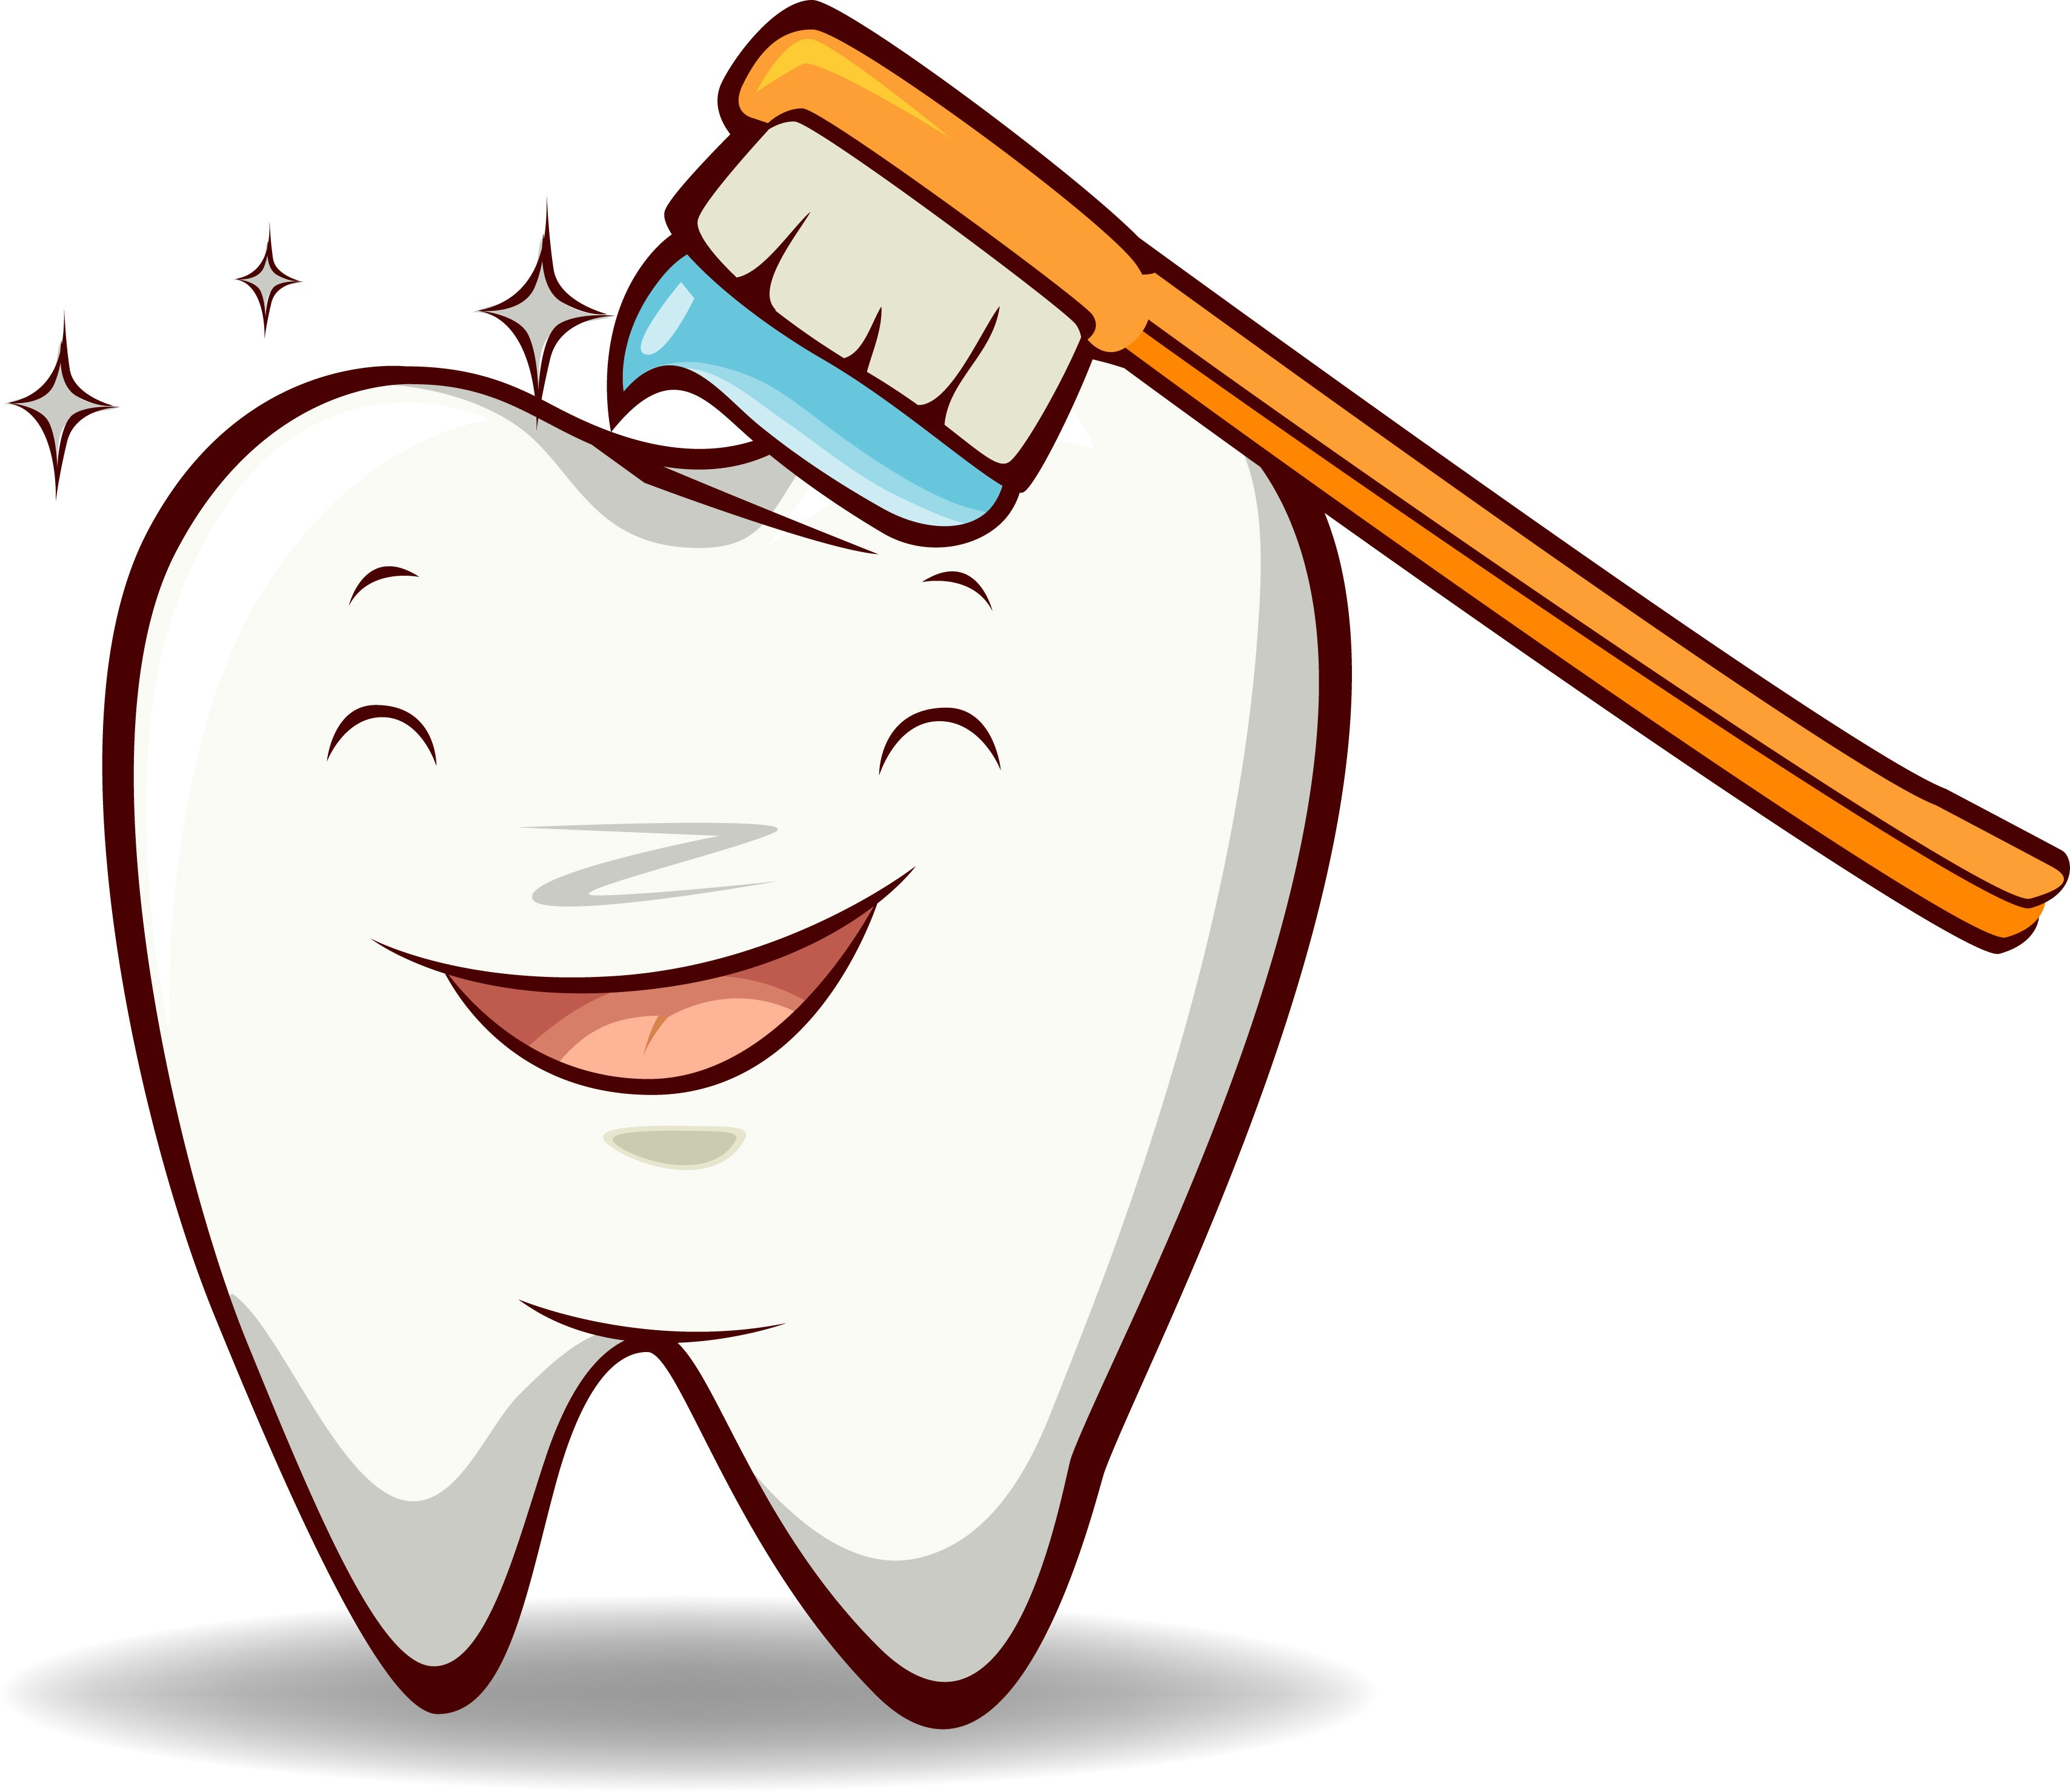 Bones clipart tooth Tooth Dental Clip Art Tooth